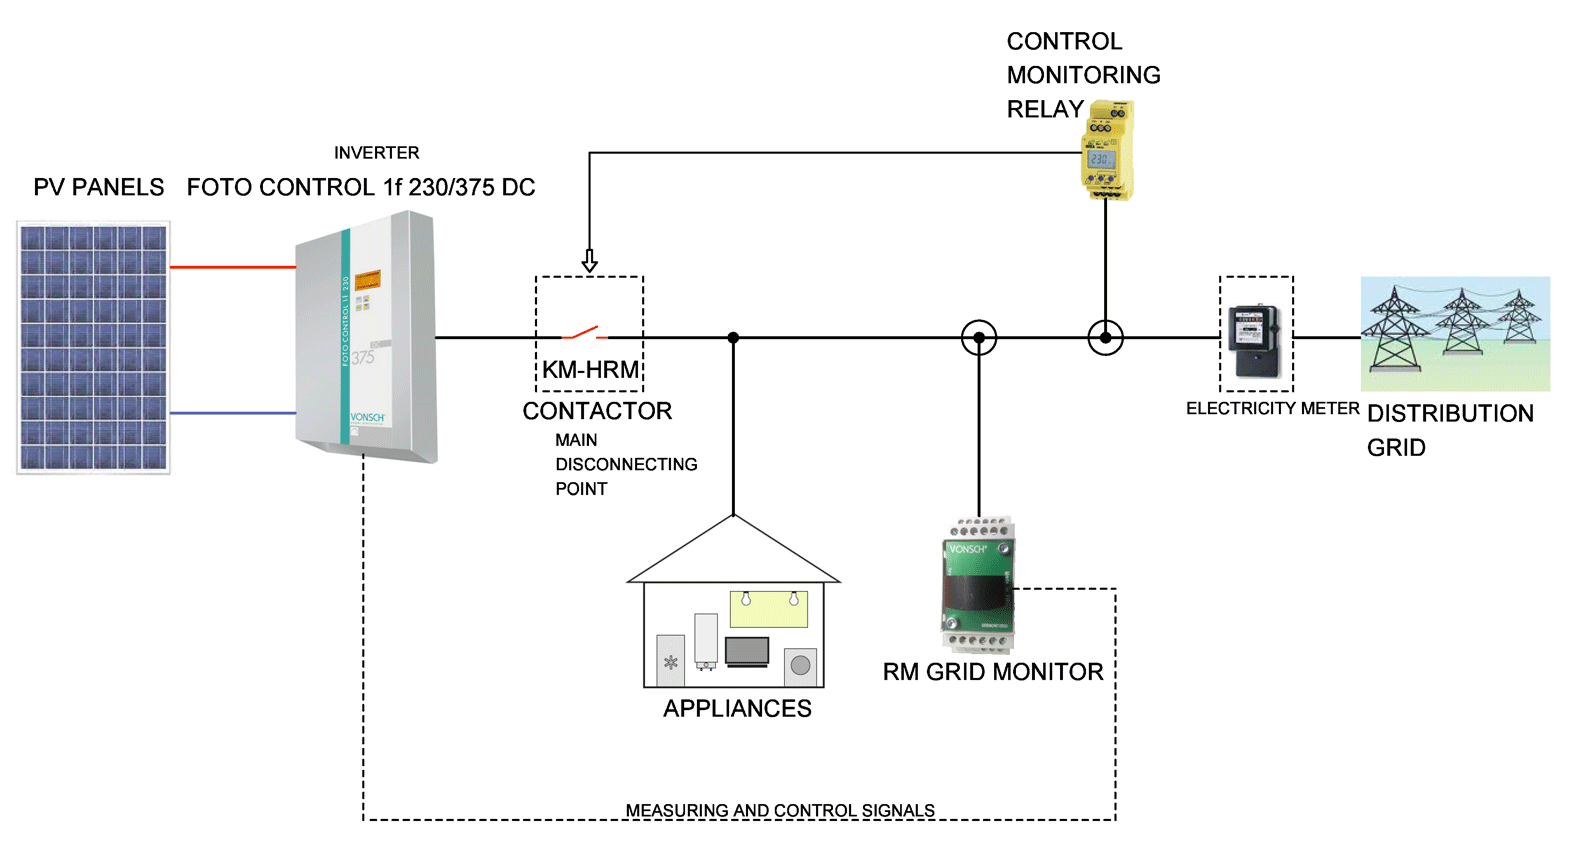 Autonomous Solar Power Plant Block Diagram Wiring Vonsch S R O Solutions For Photovoltaics Single Phase And Radar